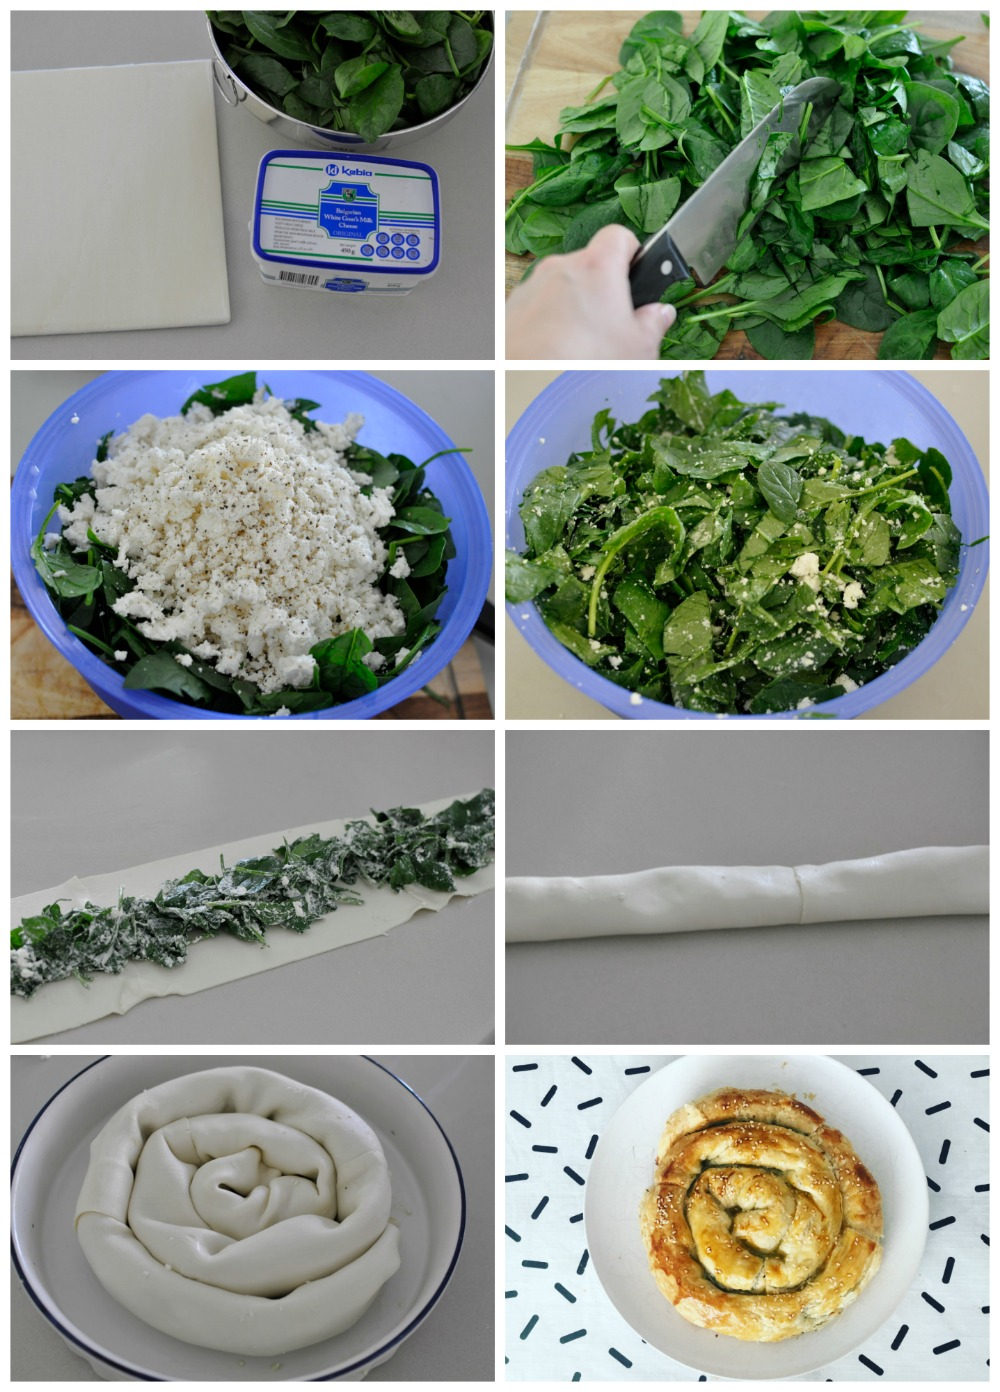 Spinach and Cheese Pastry Recipe